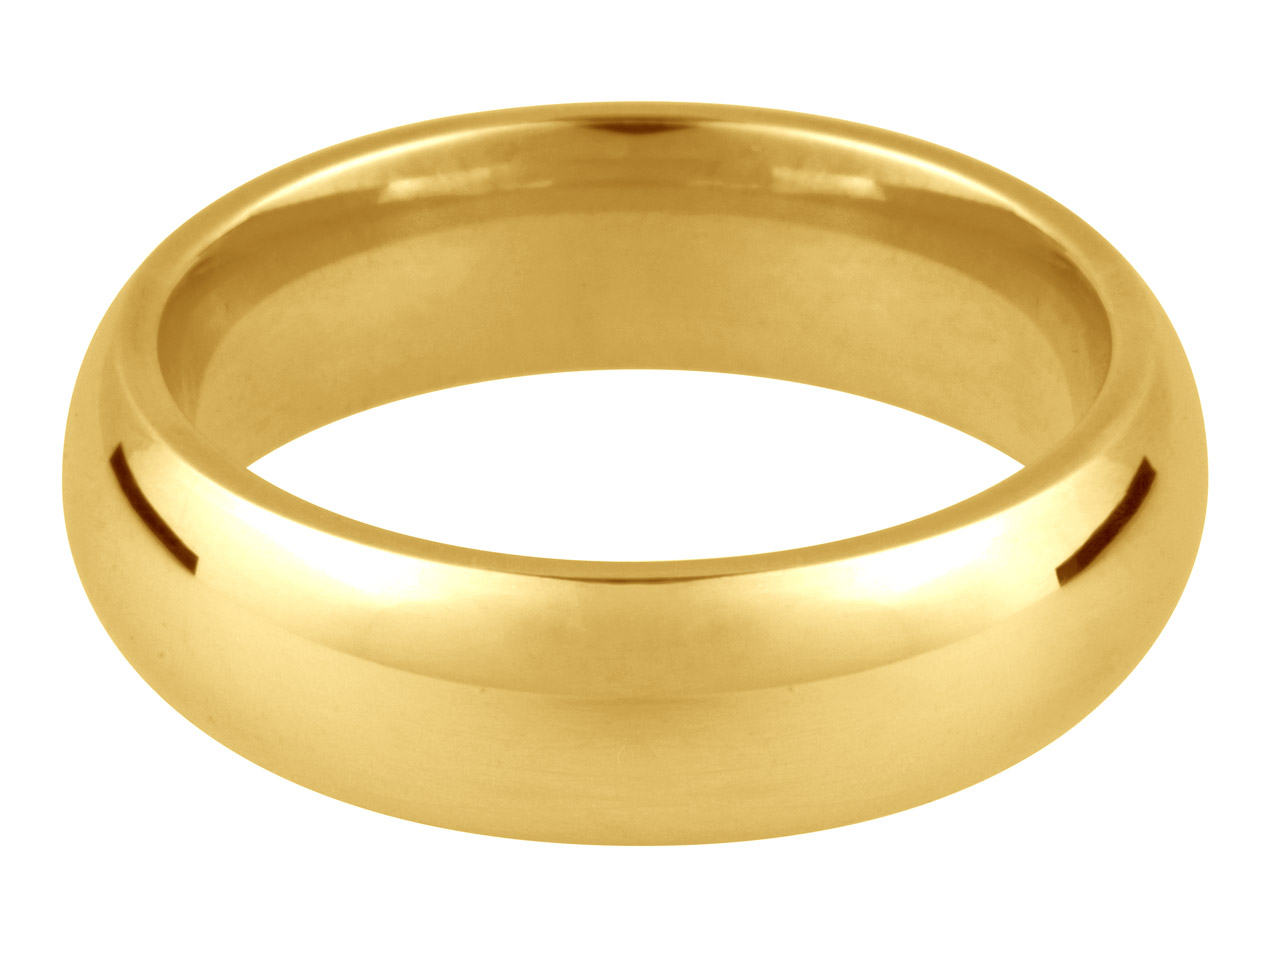 9ct Yellow Court Wedding Ring 5.0mm J 5.2gms Medium Weight Hallmarked   Wall Thickness 2.03mm